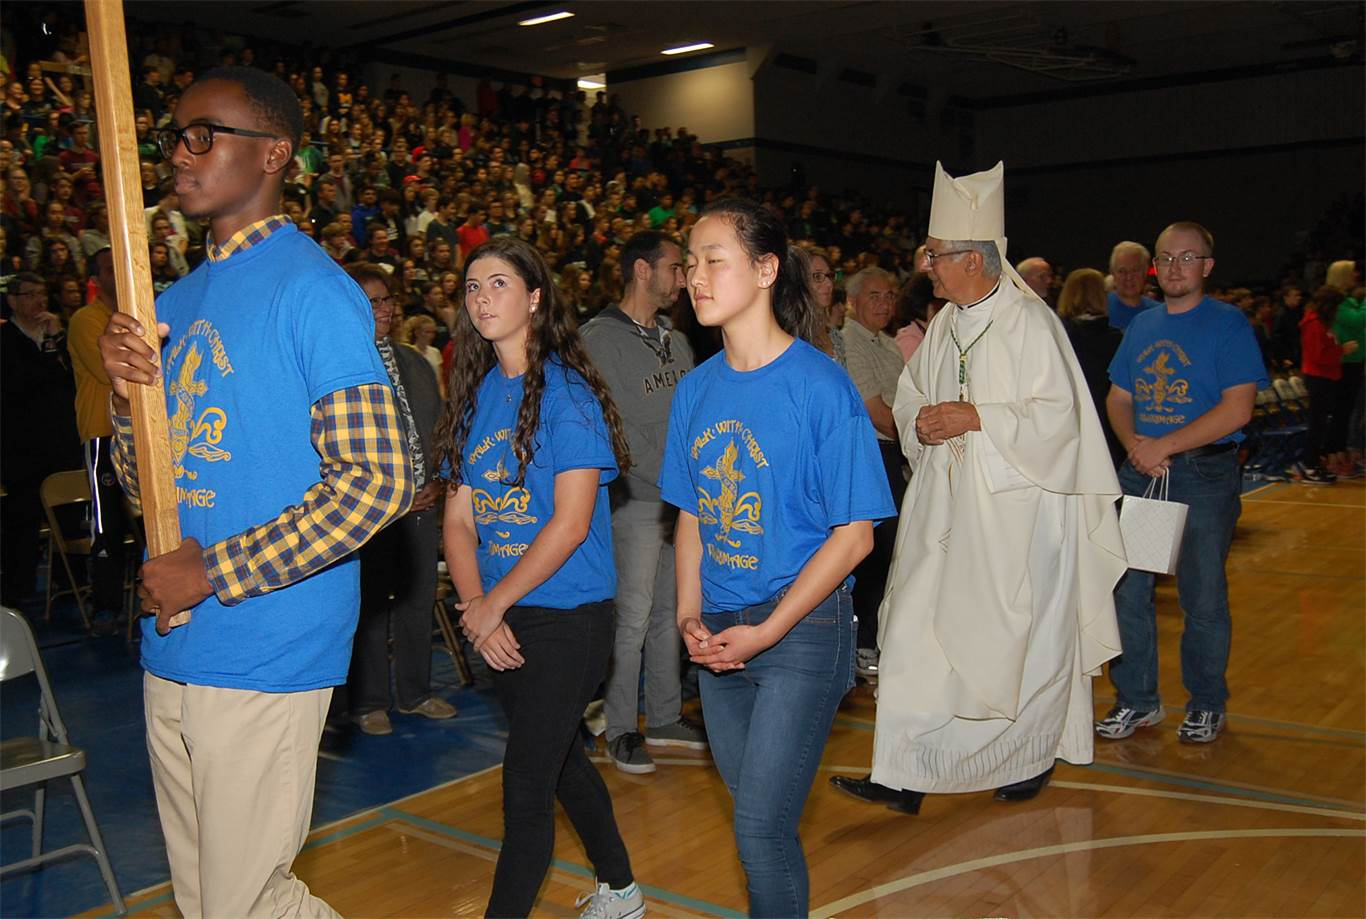 3,000 students and staff fill the gymnasium, cafeteria and forum at Cathedral High School for a pre-pilgrimage mass on Oct. 15.